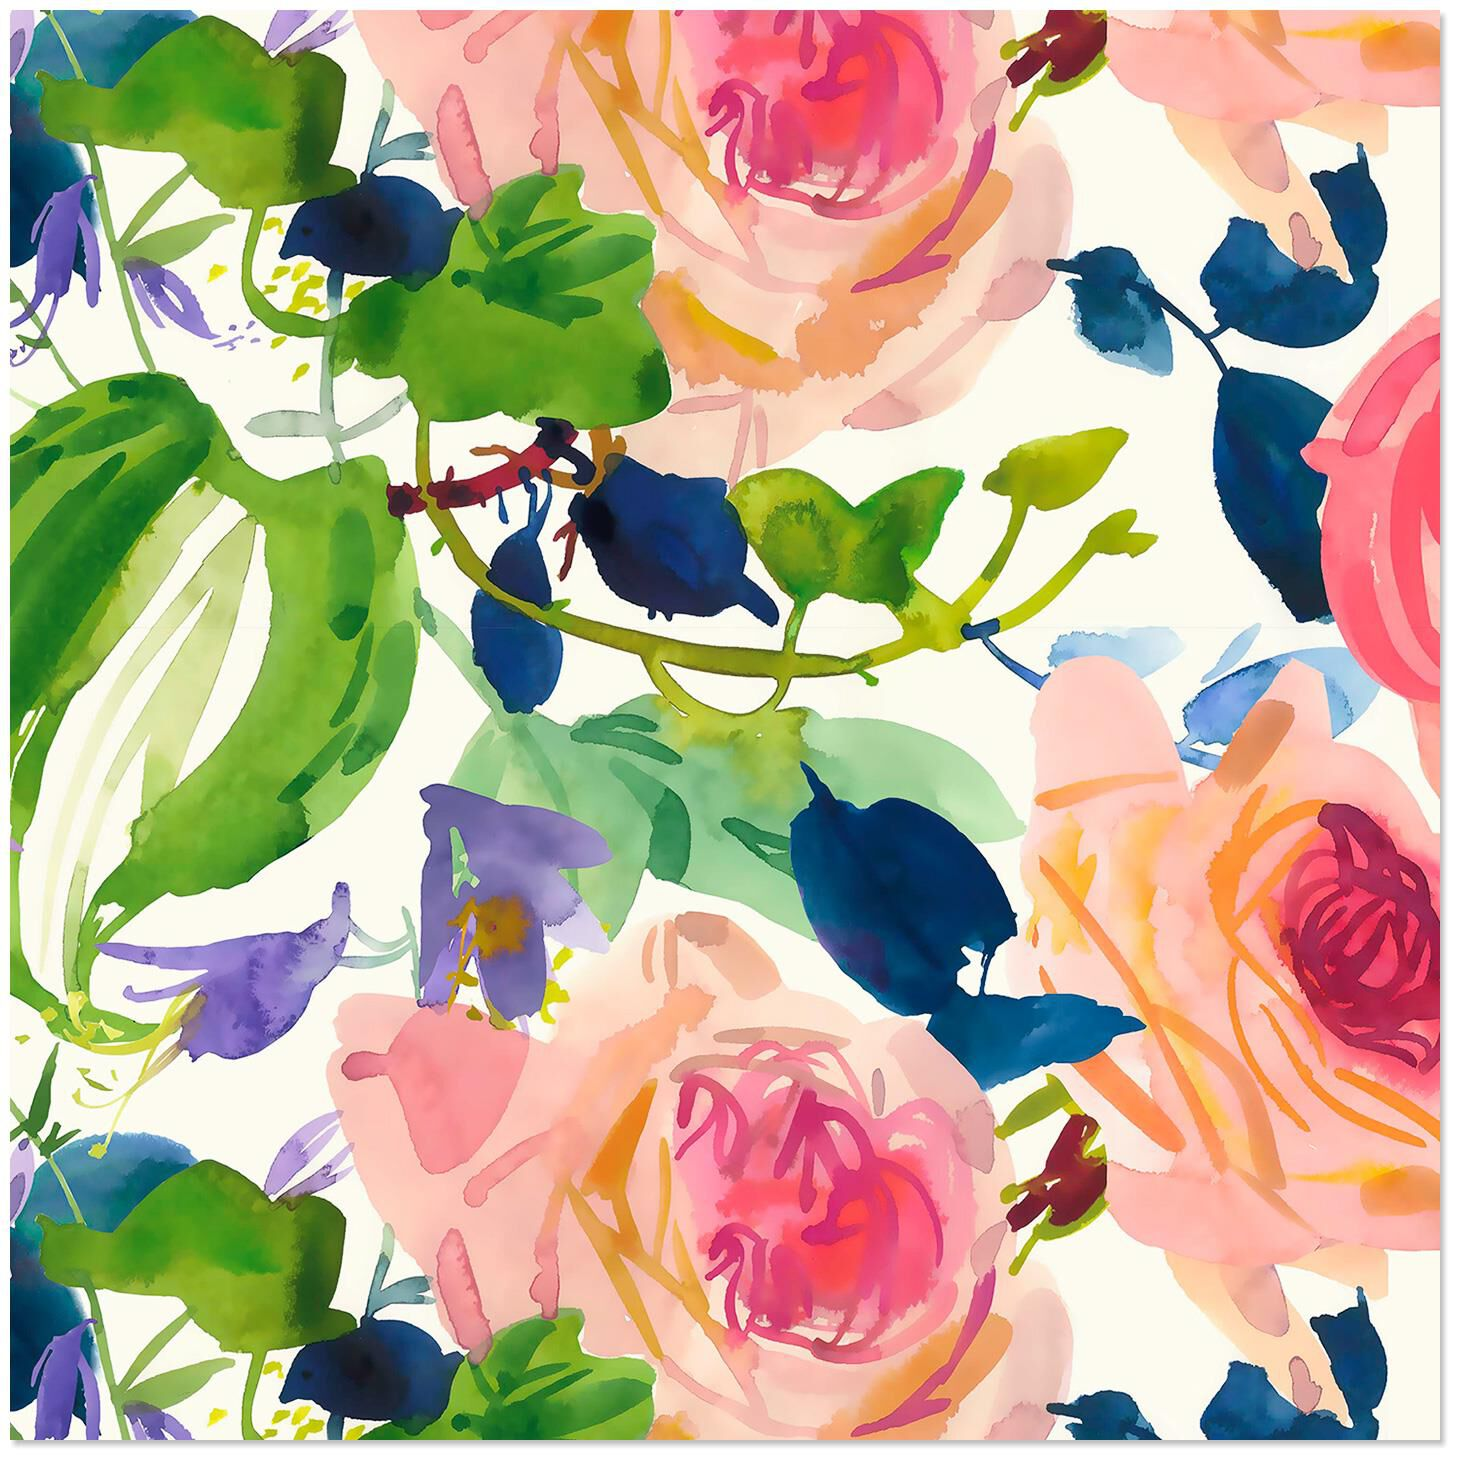 Watercolor Floral Wrapping Paper Roll 27 Sq Ft